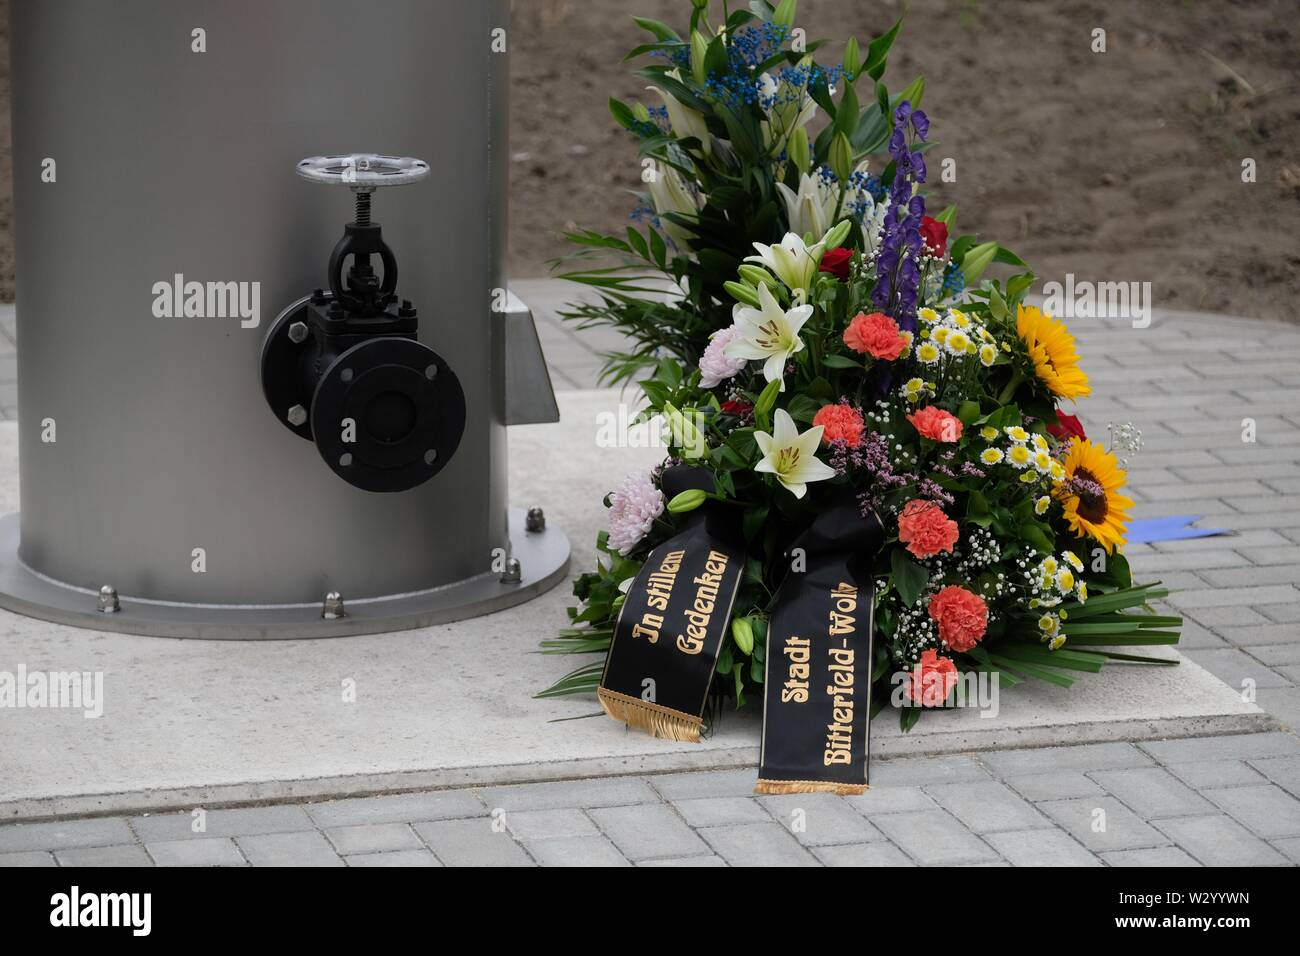 11 July 2019, Saxony-Anhalt, Bitterfeld-Wolfen: A wreath lies at a memorial ceremony at the chemical park at a monument. A stele commemorates the victims of the chemical accident of 11.07.1968, when 42 people died and more than 240 were injured. Photo: Sebastian Willnow/dpa-Zentralbild/ZB - Stock Image